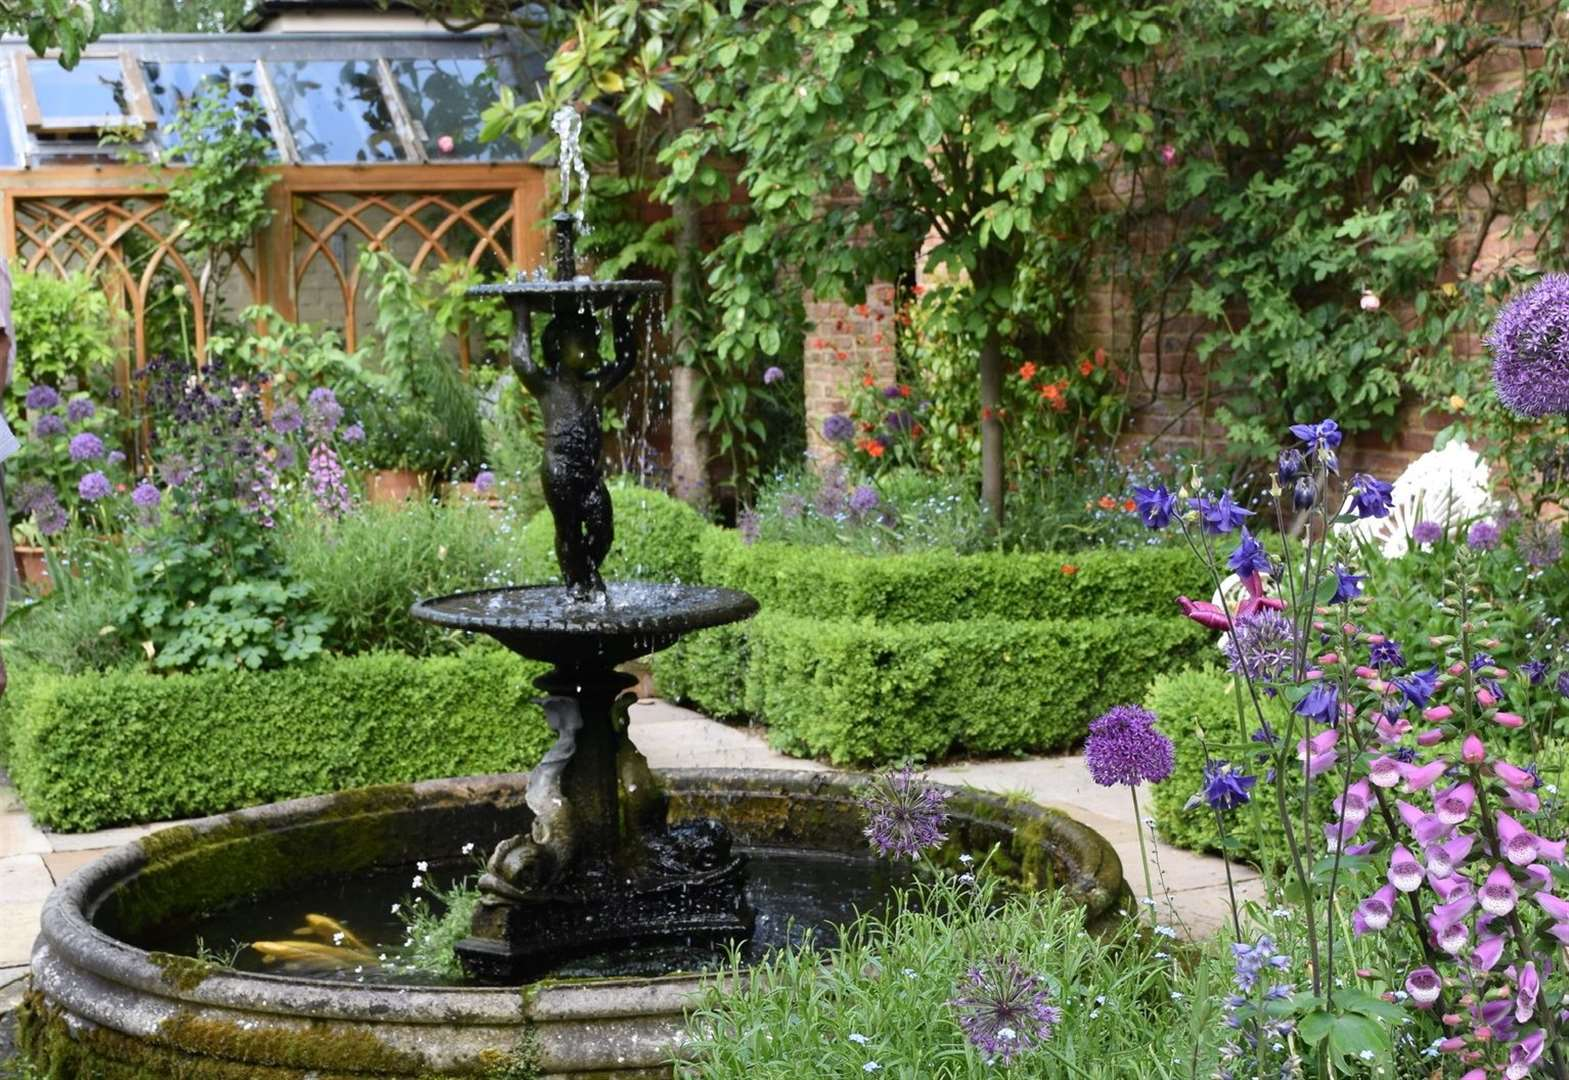 Rutland Lord Lieutenant's garden to appear on BBC Two's Gardeners' World just before NGS opening